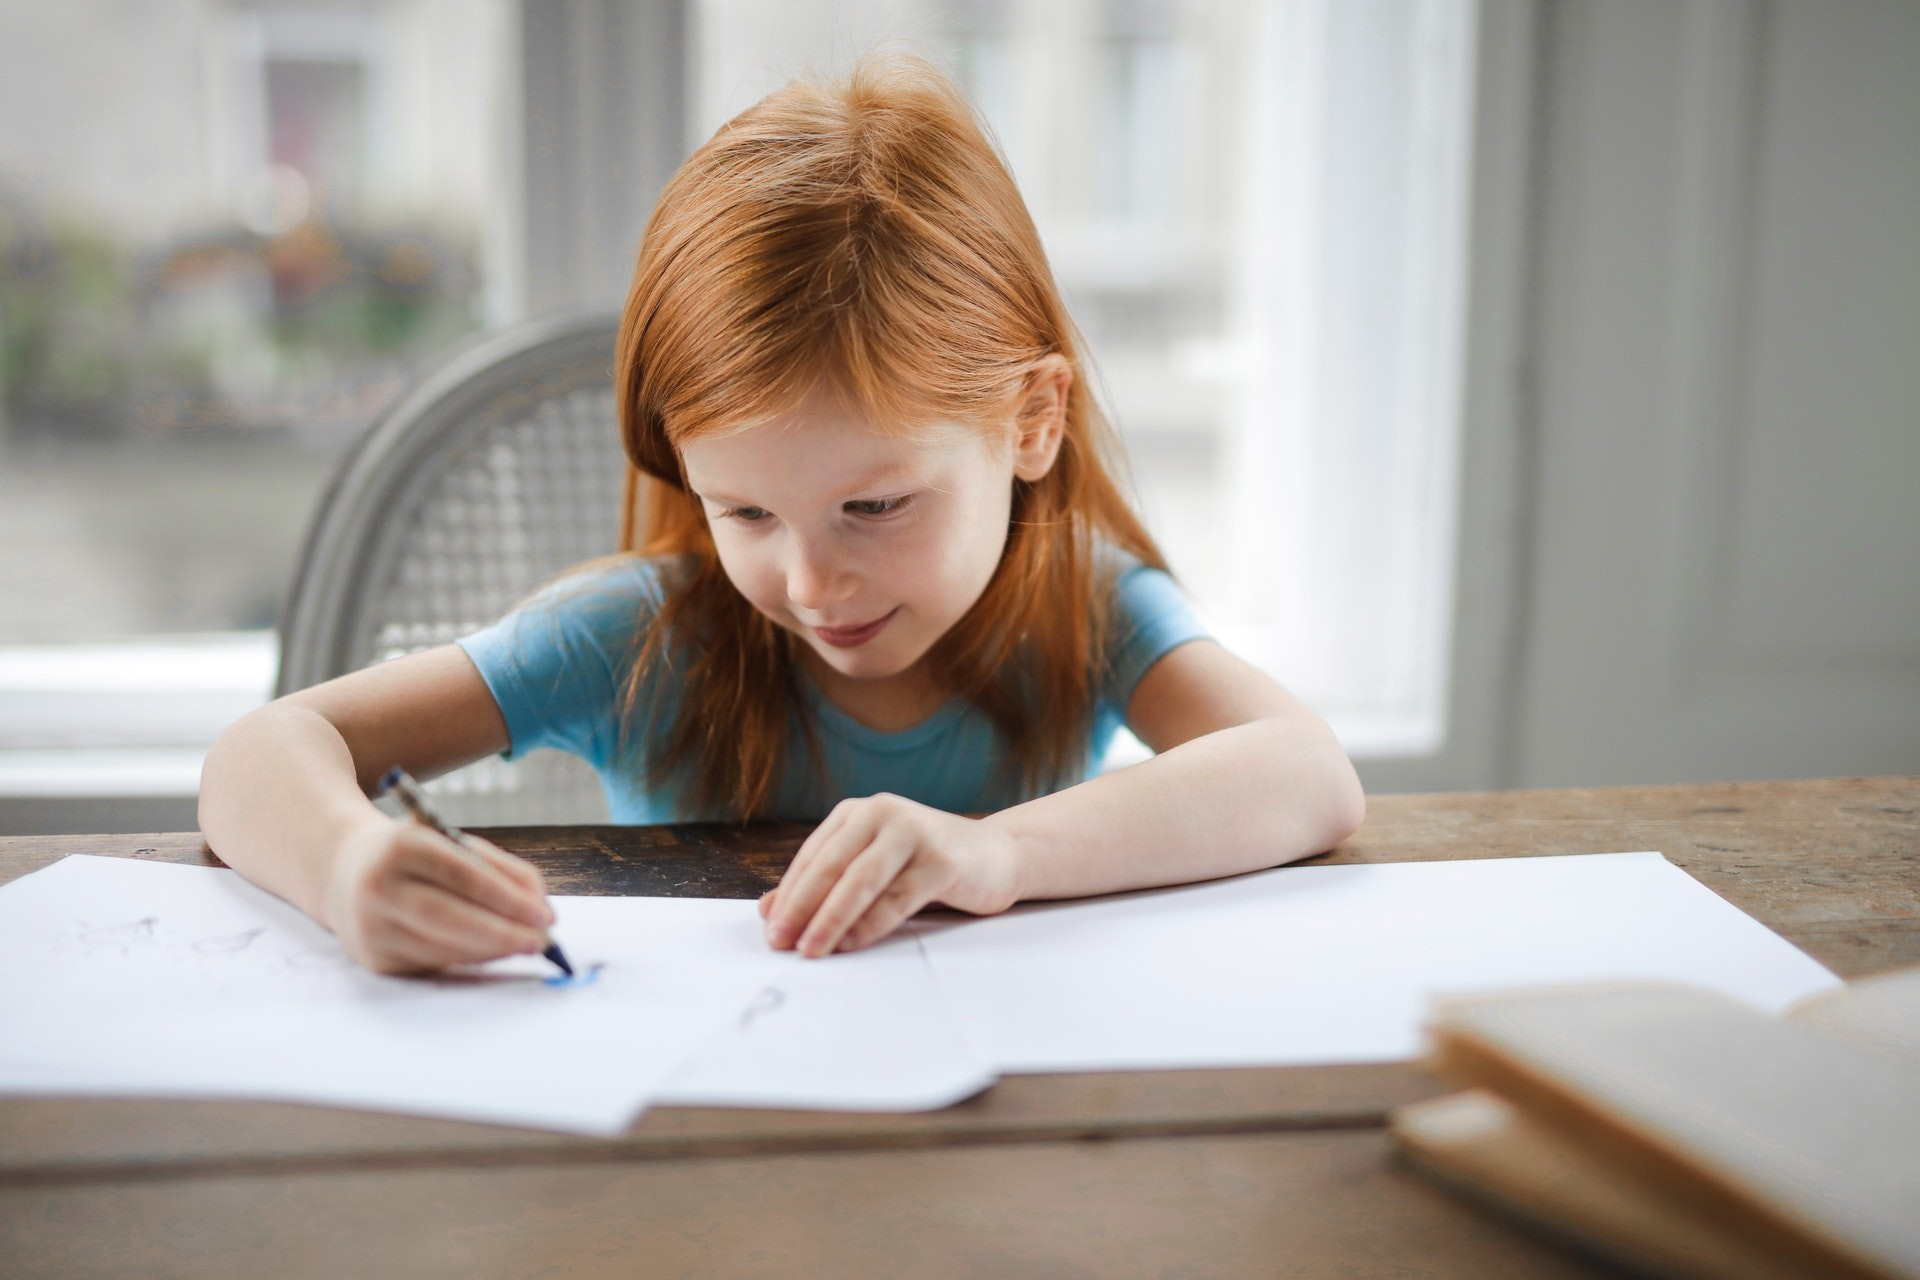 Young child sits at a table in front of a window while writing on a sheet of paper.